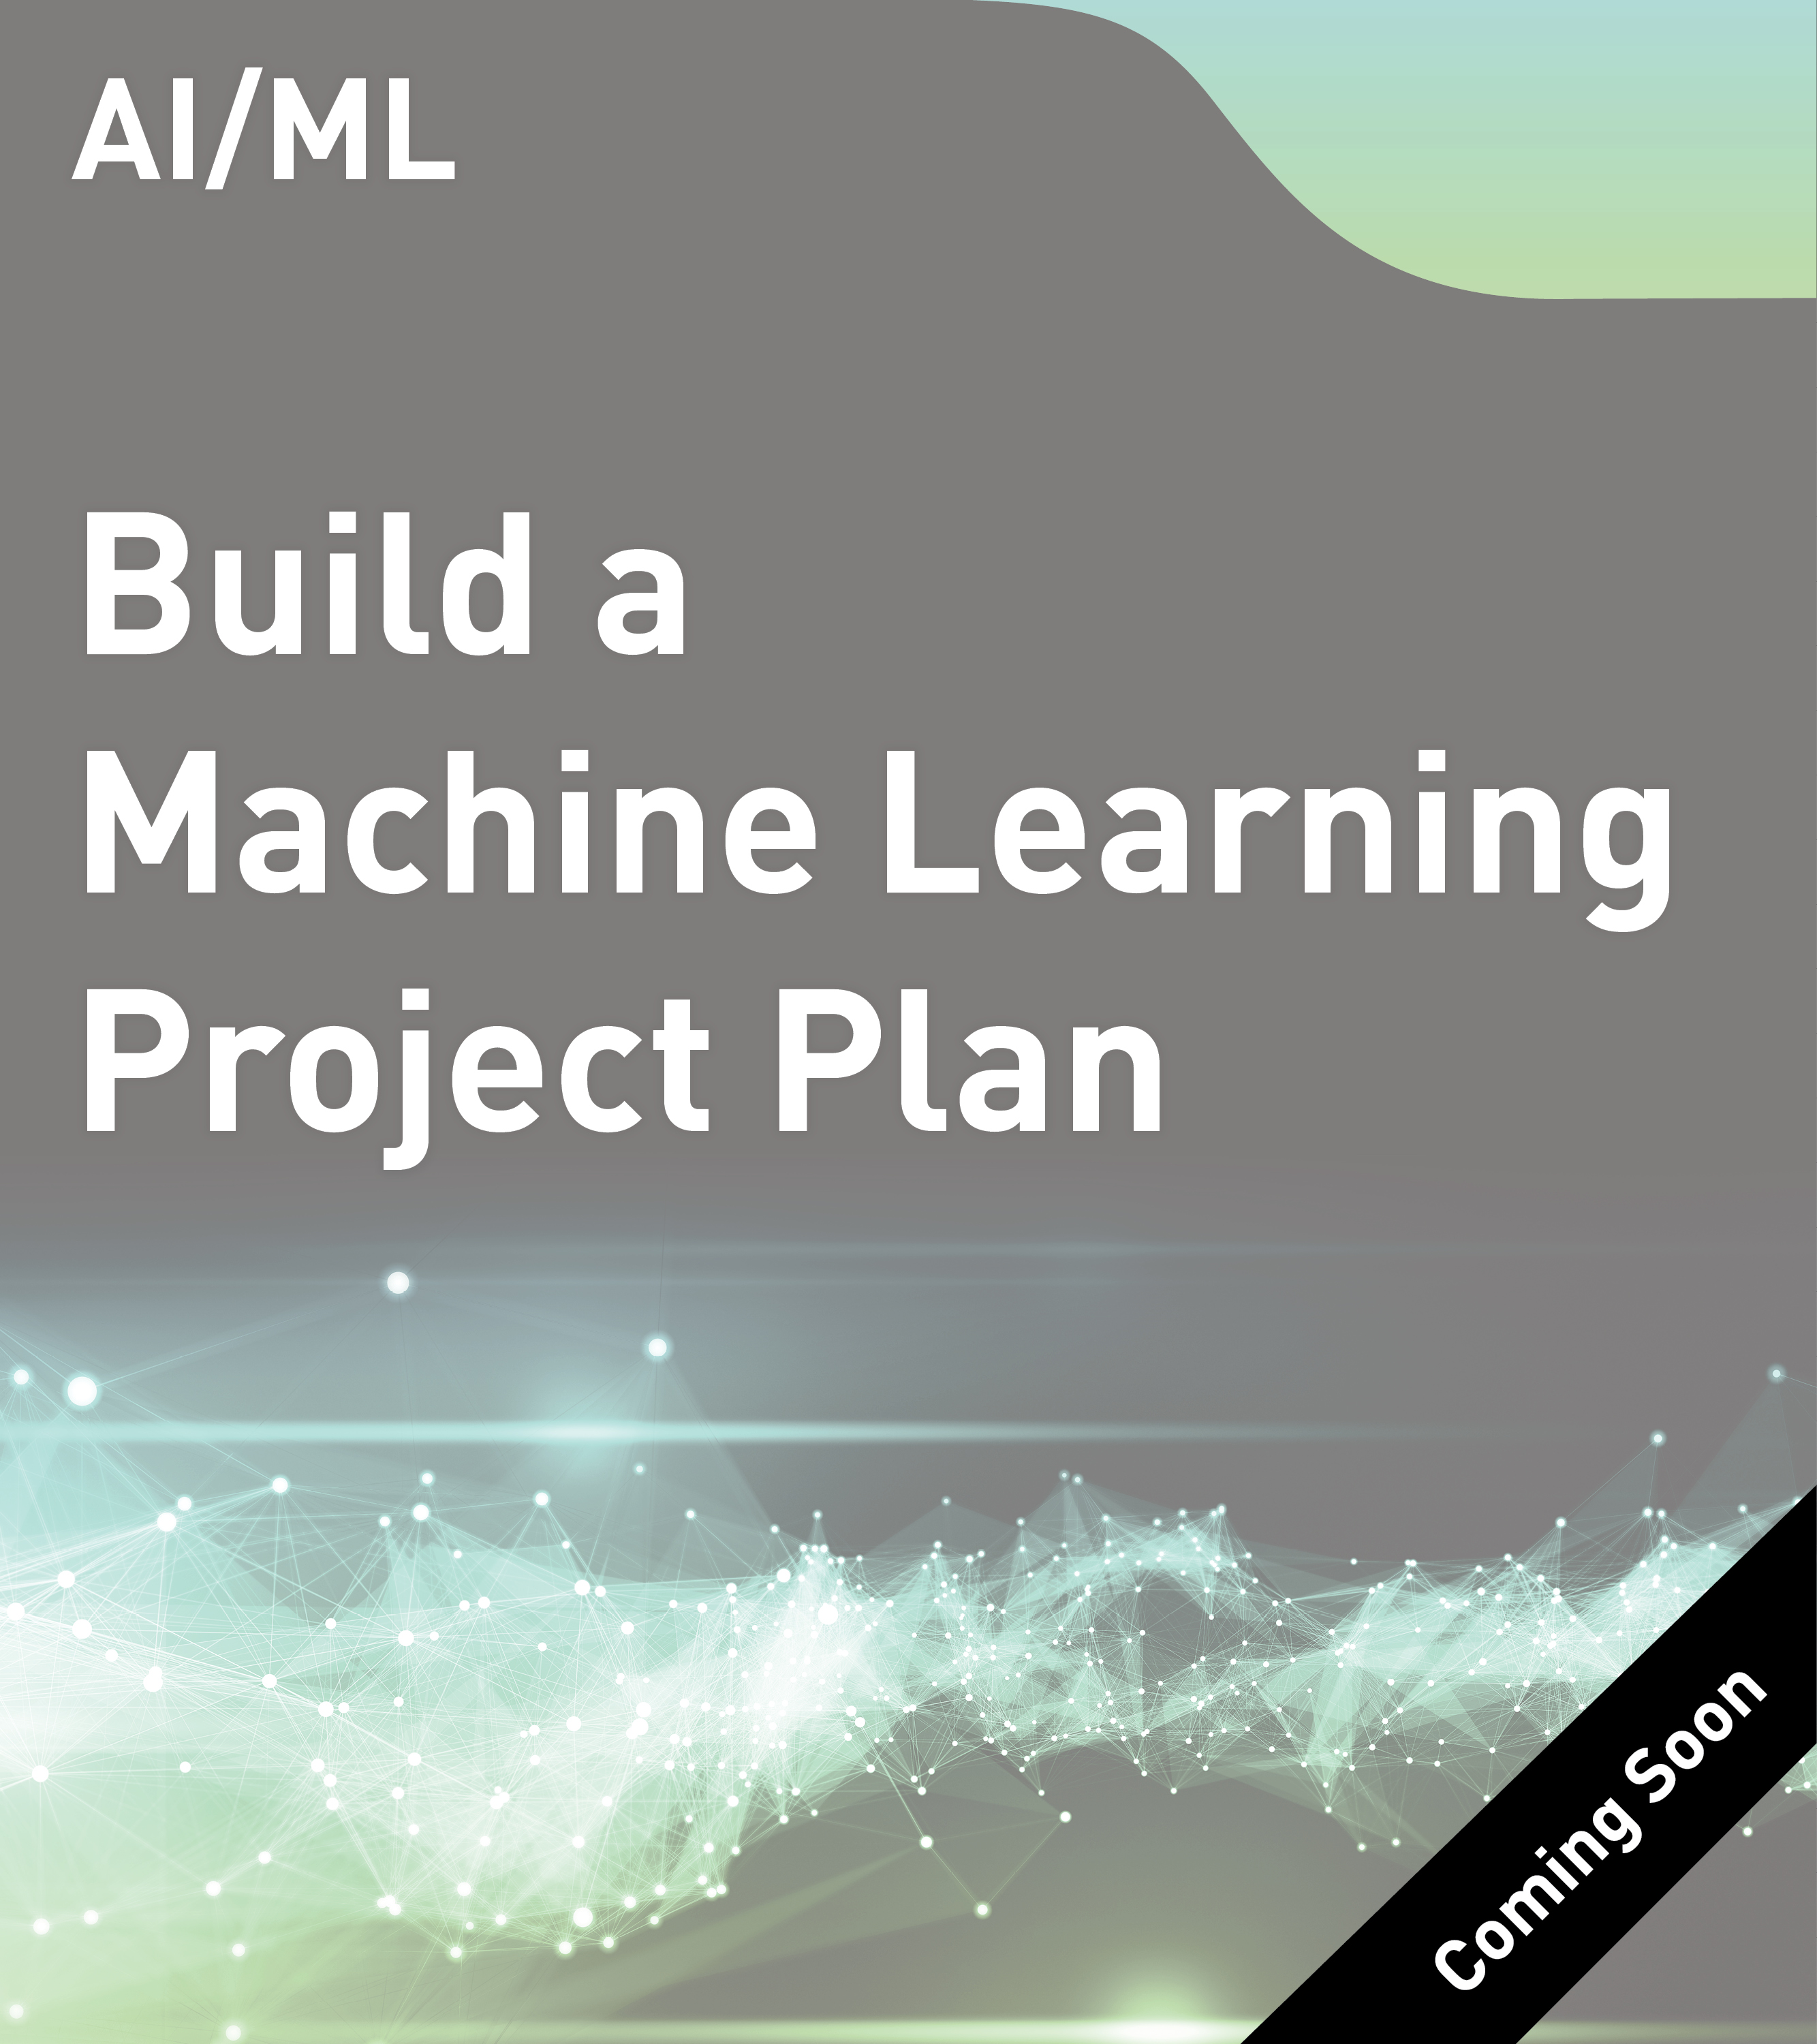 Build a Machine Learning Project Plan